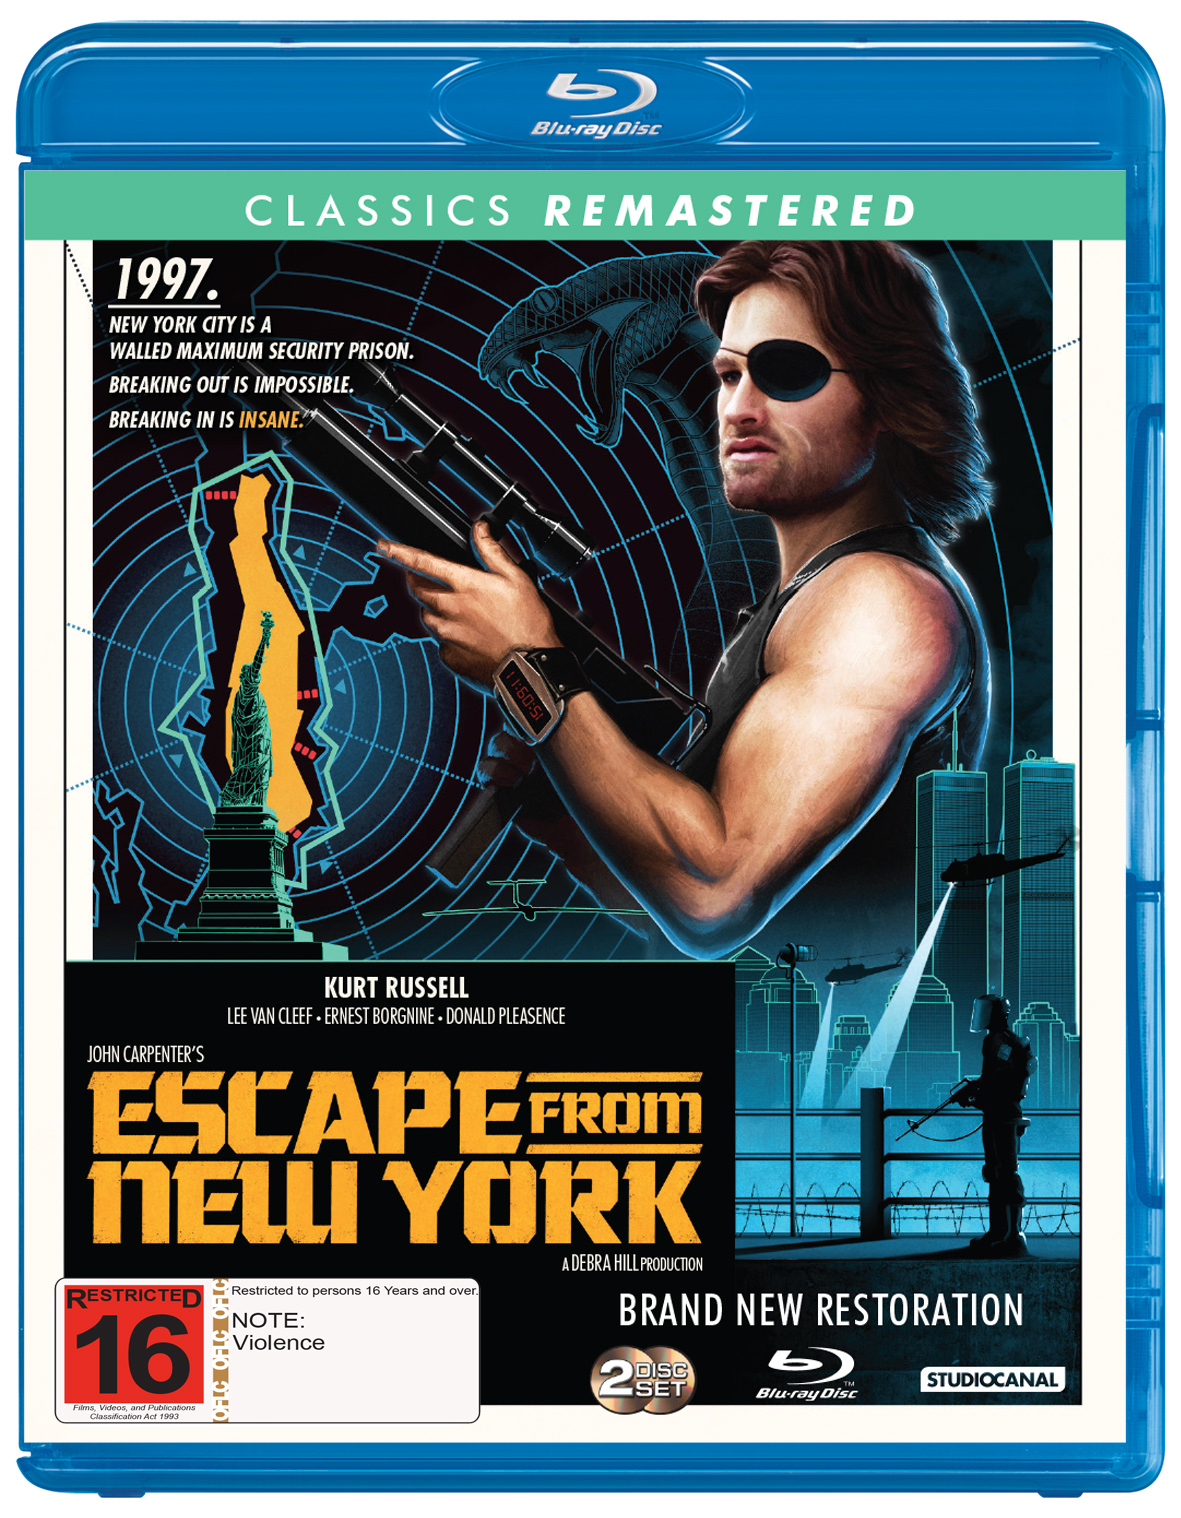 Escape From New York (1981) image